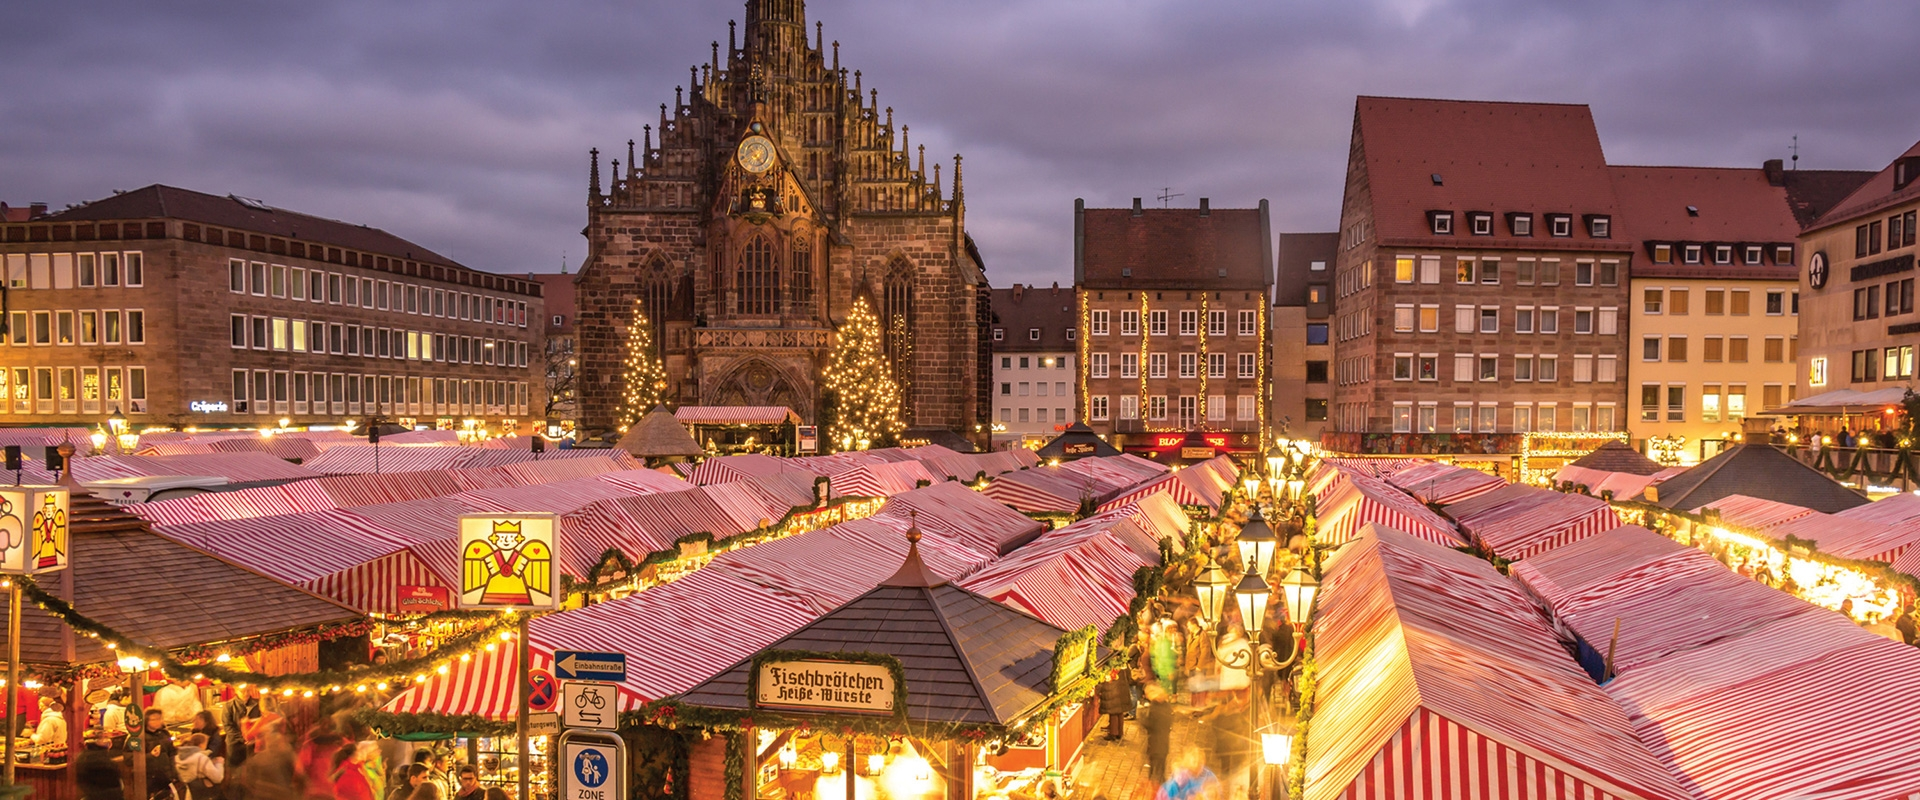 Christmas Markets In Europe 2019.Festive Christmas Markets With Magnificent Europe 2019